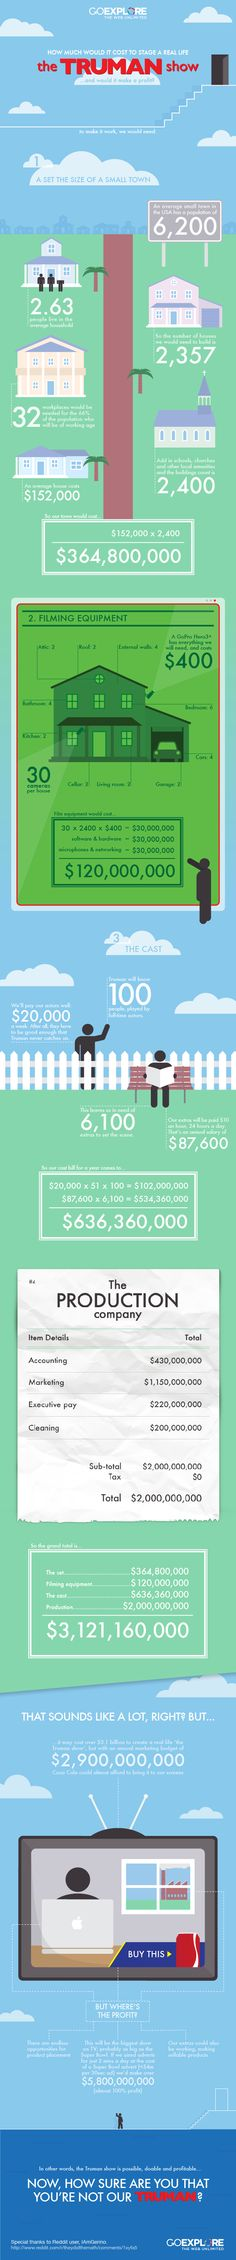 Truman Show infographic. 1st, no I did not name Truman after the movie. 2nd, this is crazy.